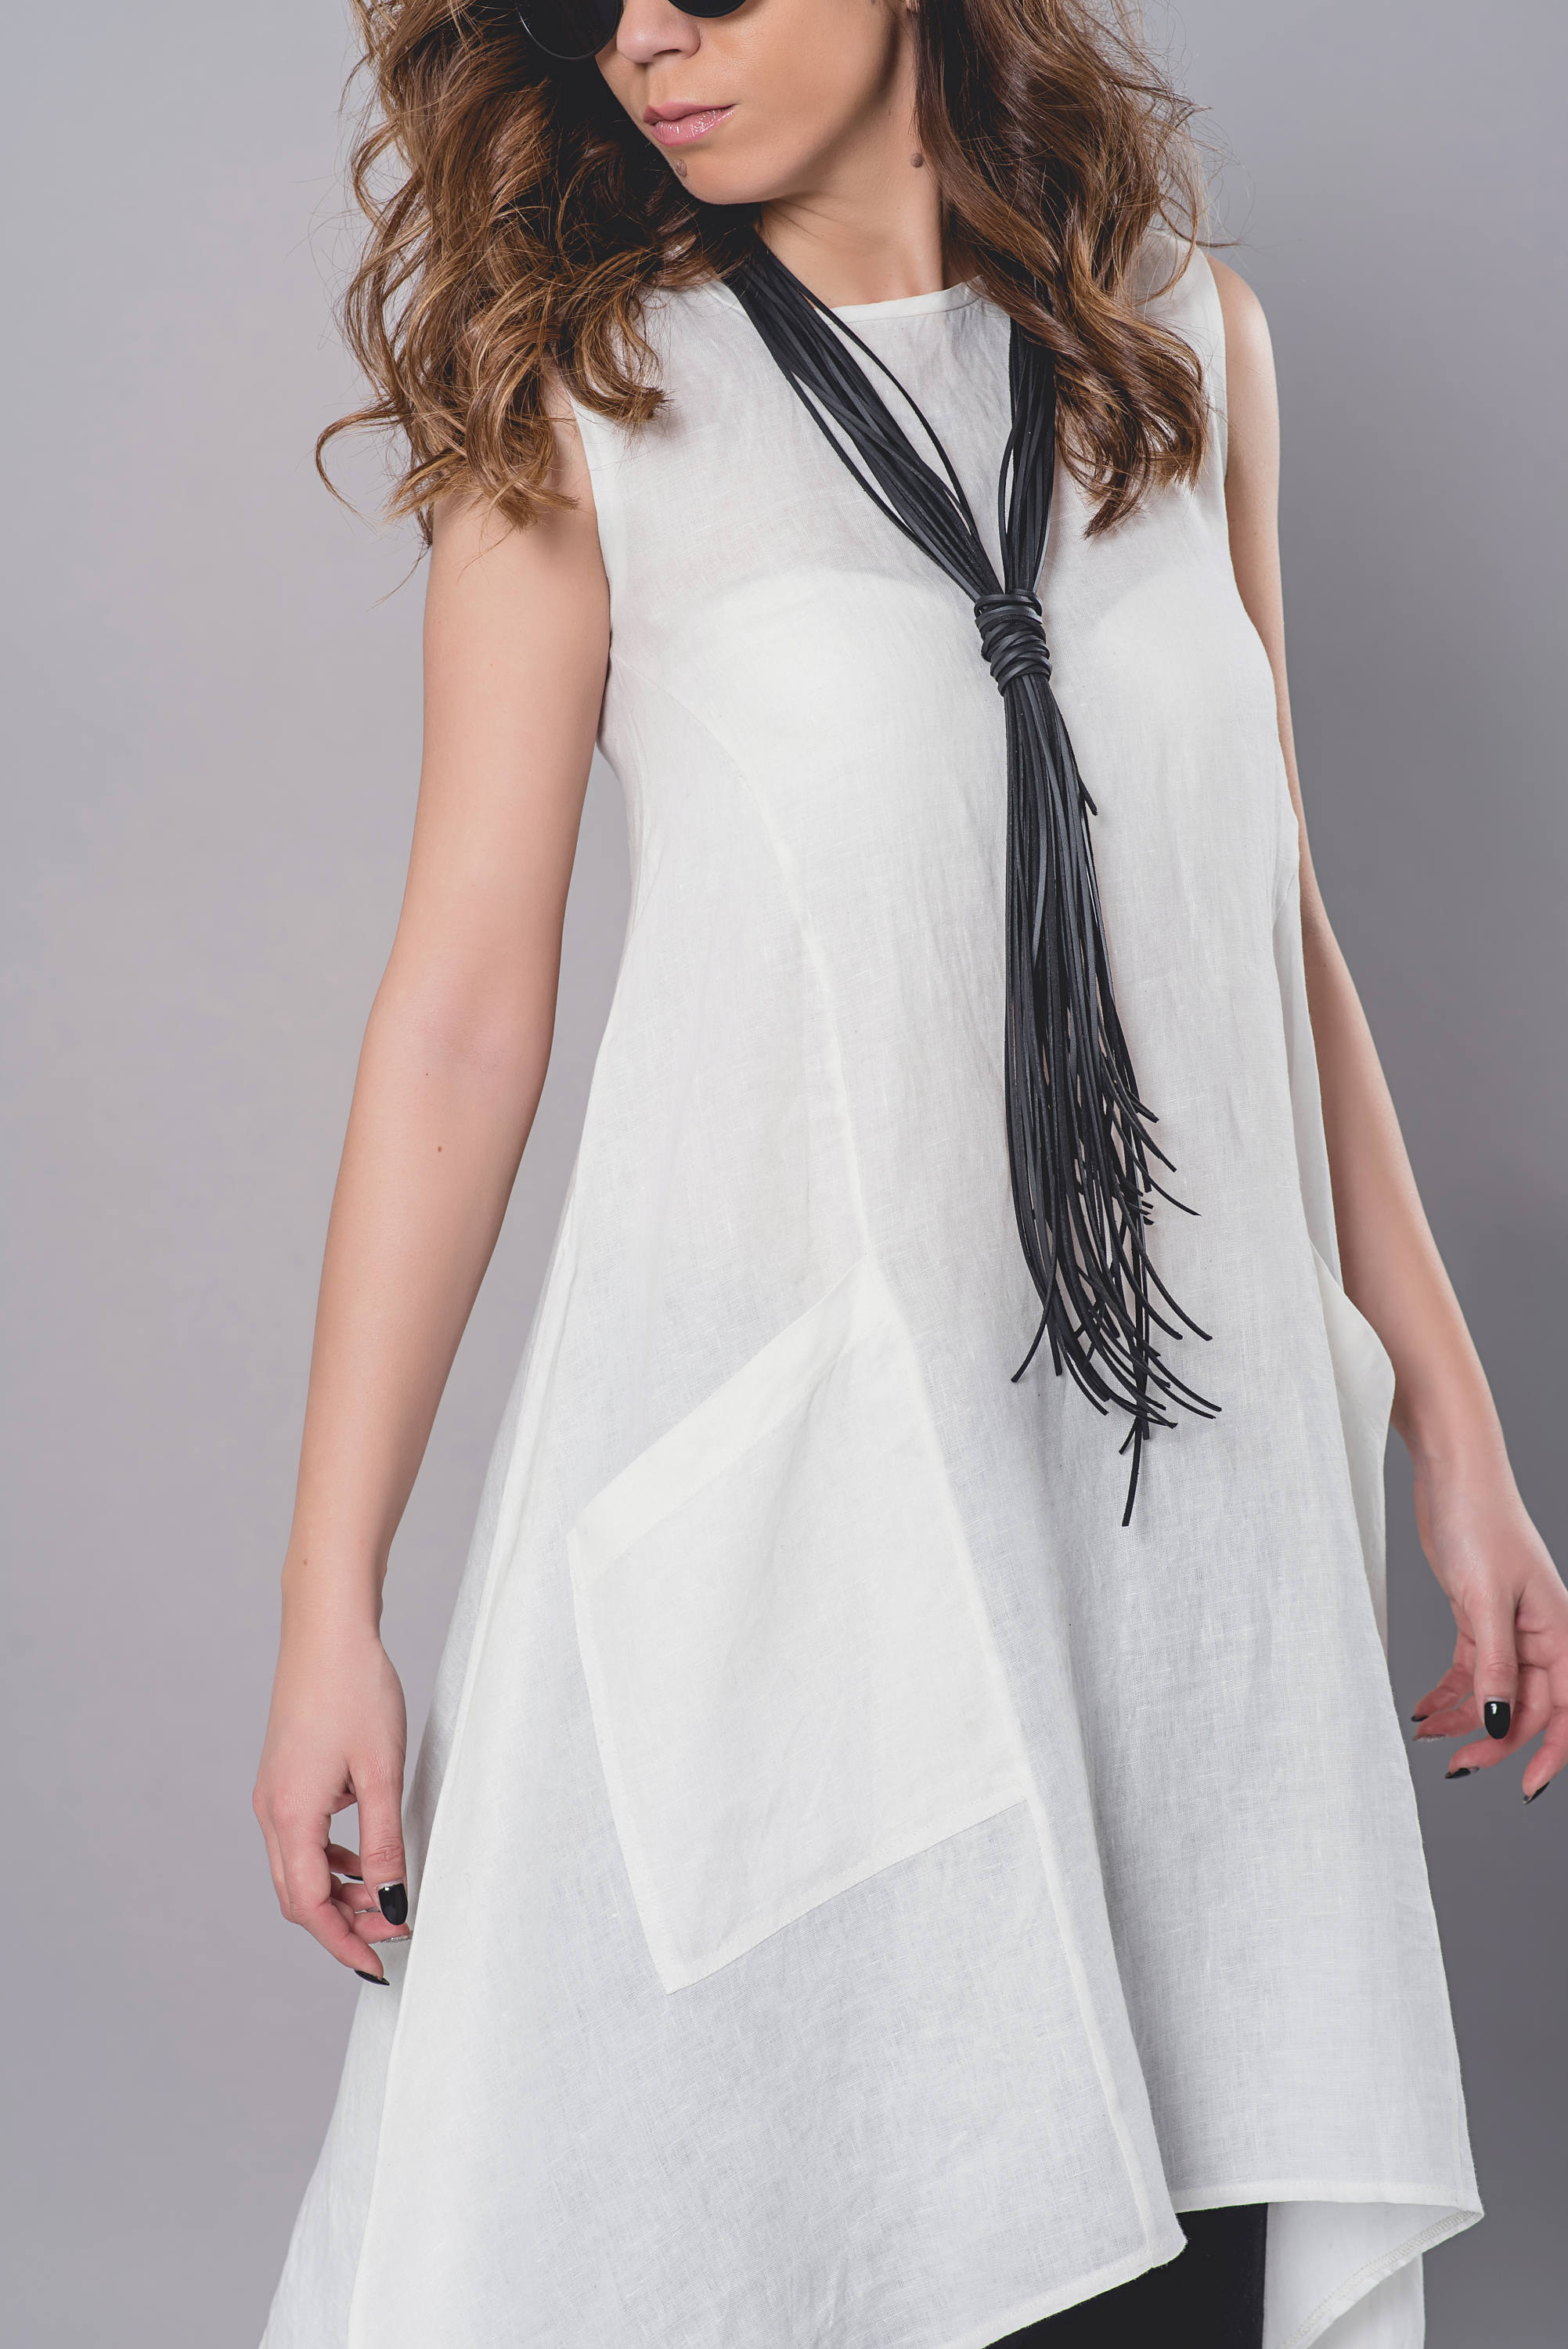 Linen Maxi Top In White Allseams